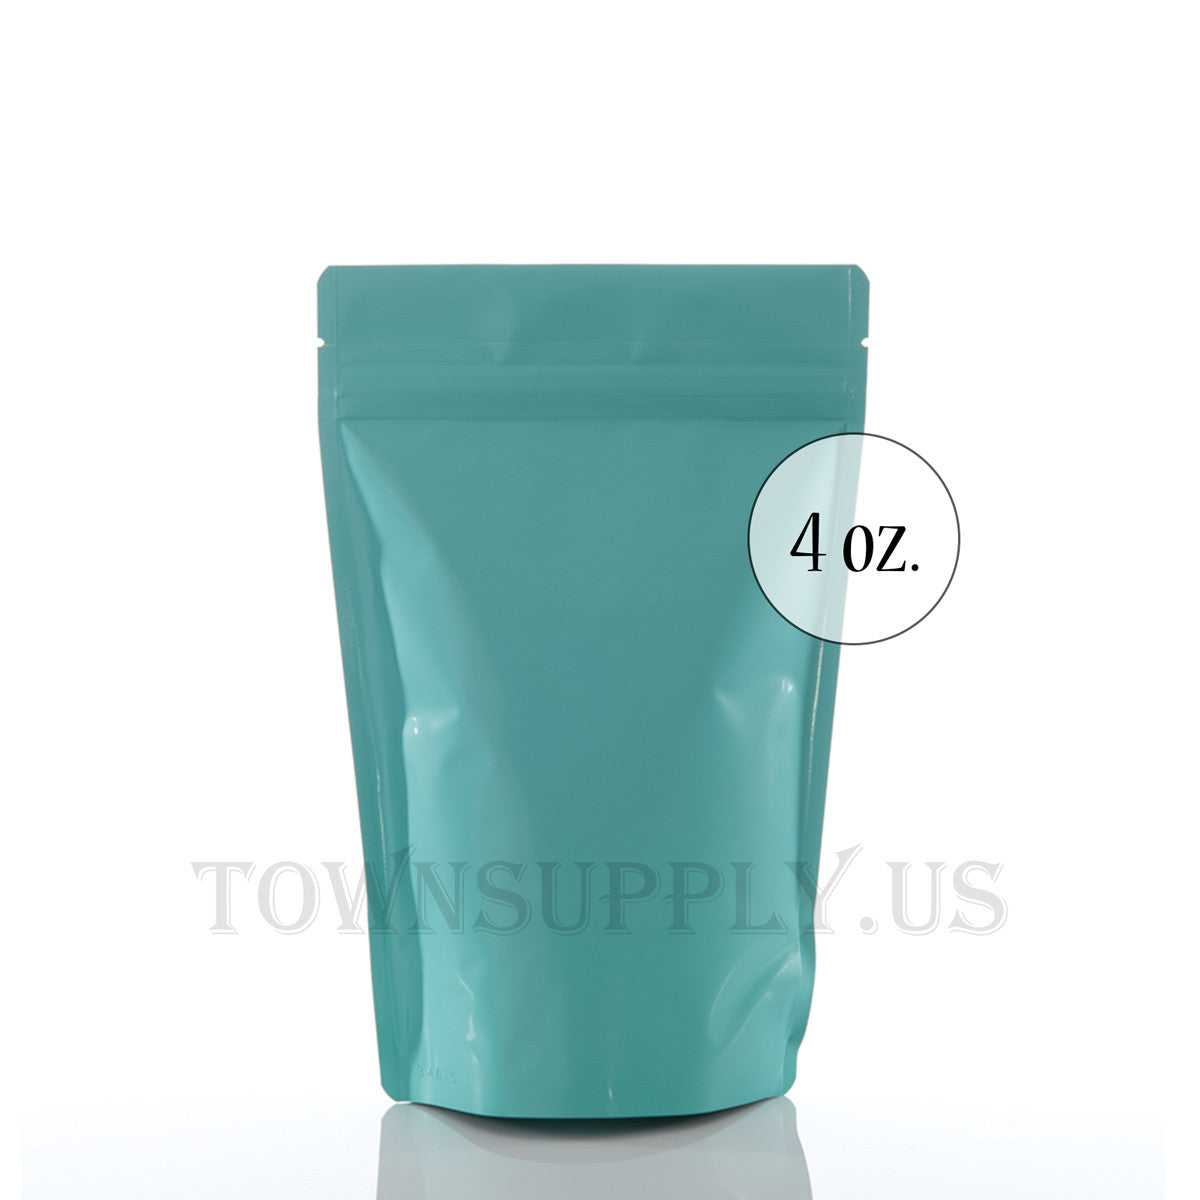 matte turquoise resealable stand up pouch, 4 oz. bags - Town Supply